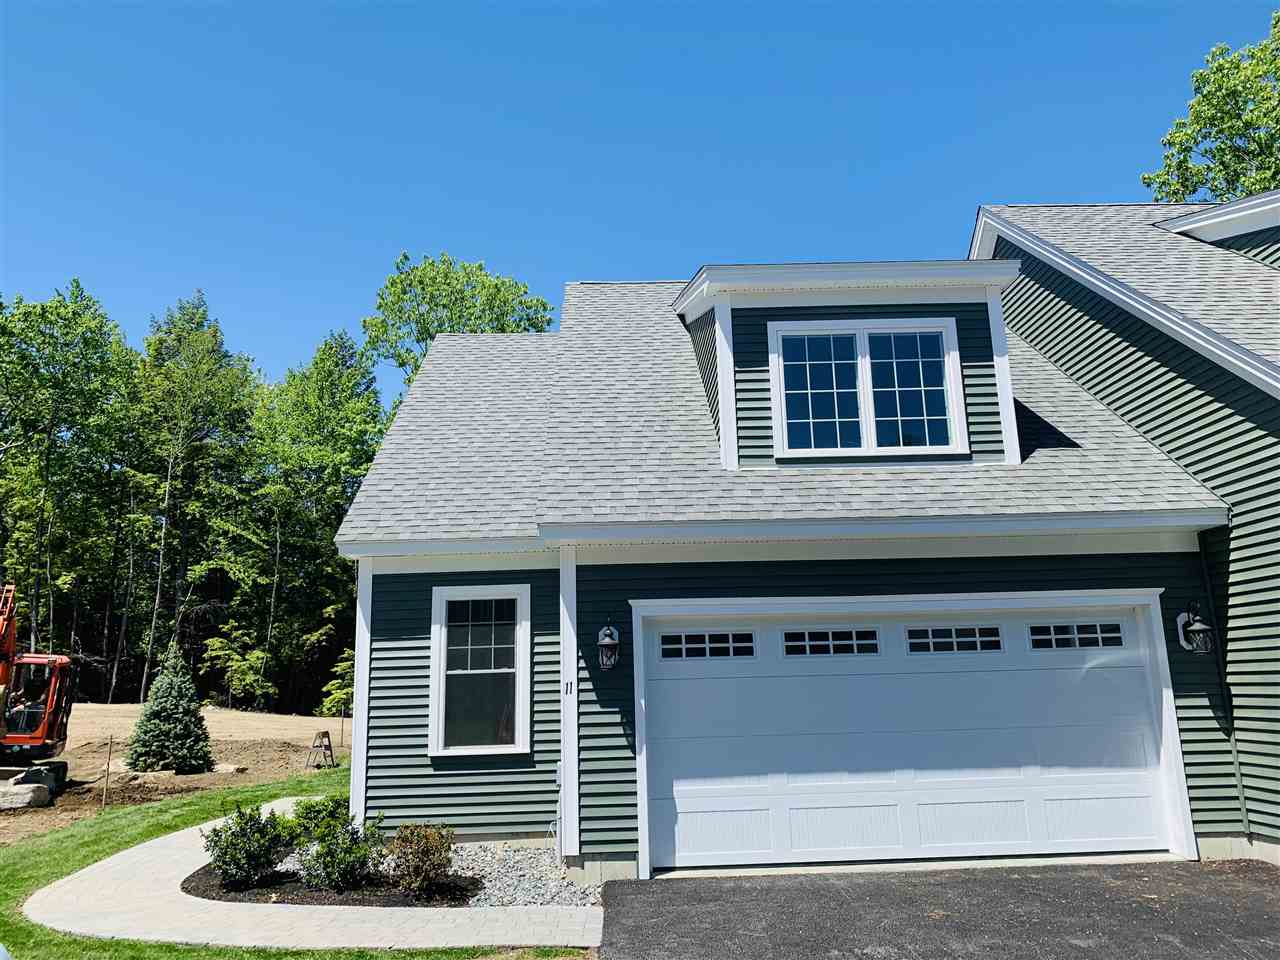 Photo of 11 Green Road Newmarket NH 03857